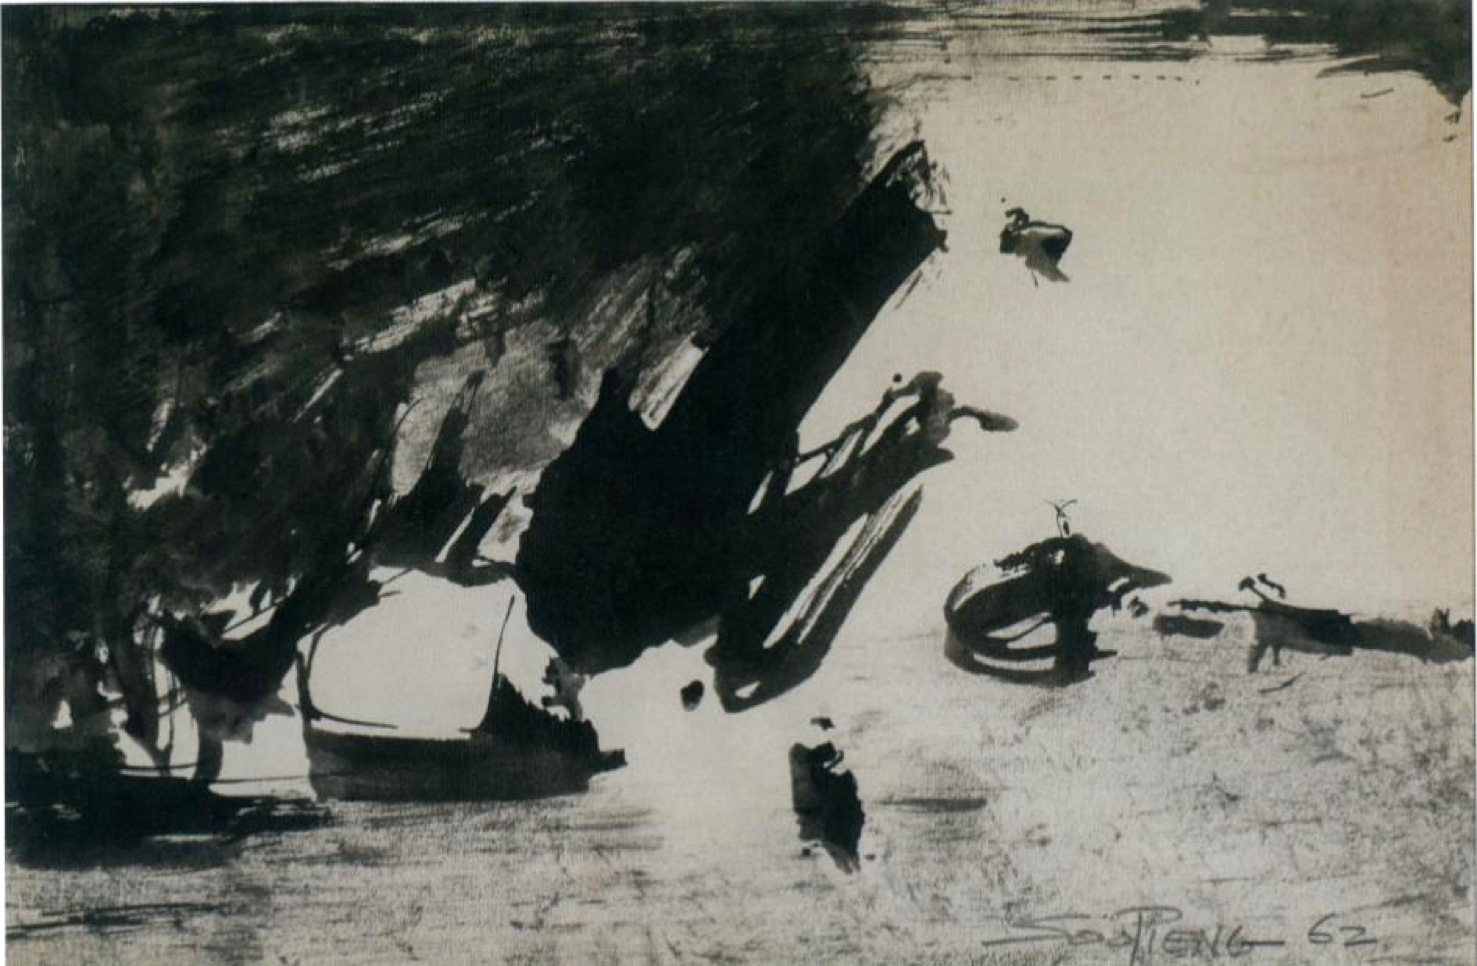 Cheong Soo Pieng, Abstract Composition III, ink on paper, 15 x 22.5 cm, 1962